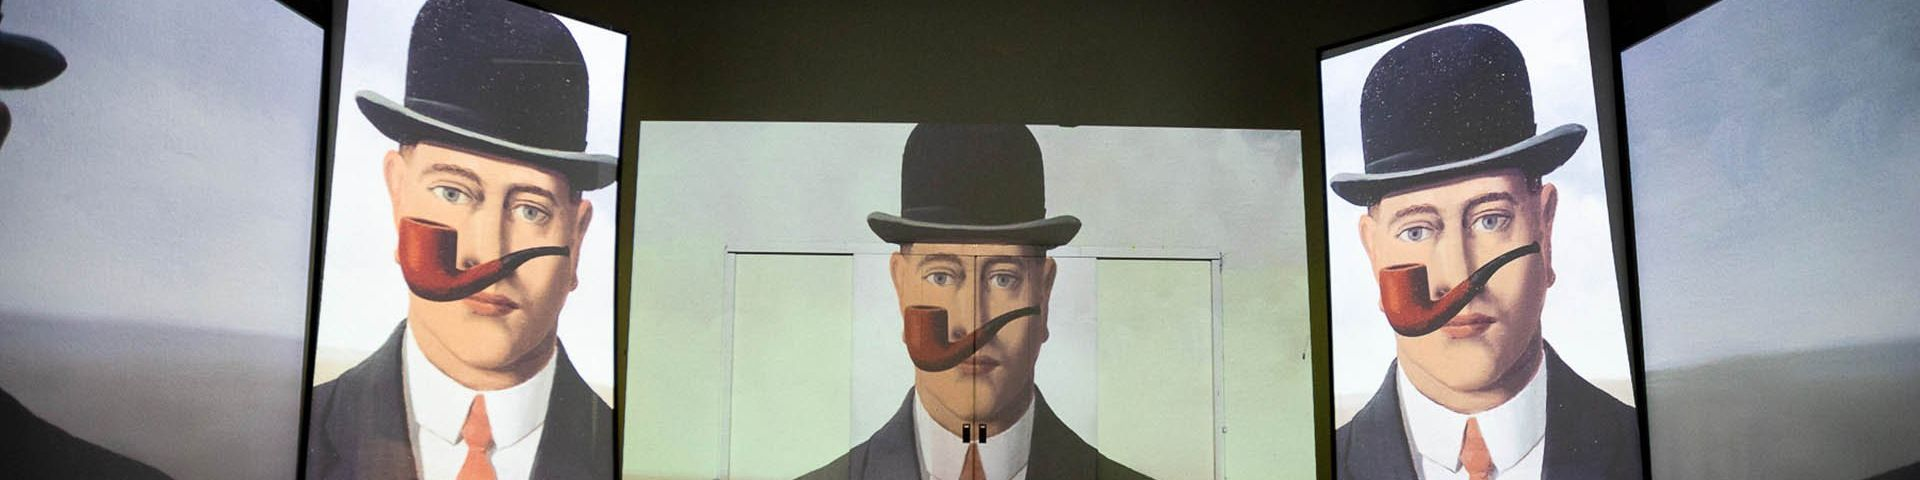 Magritte's La Bonne Foi or 'Good Faith' projected three times side by side on the walls of the exhibition.